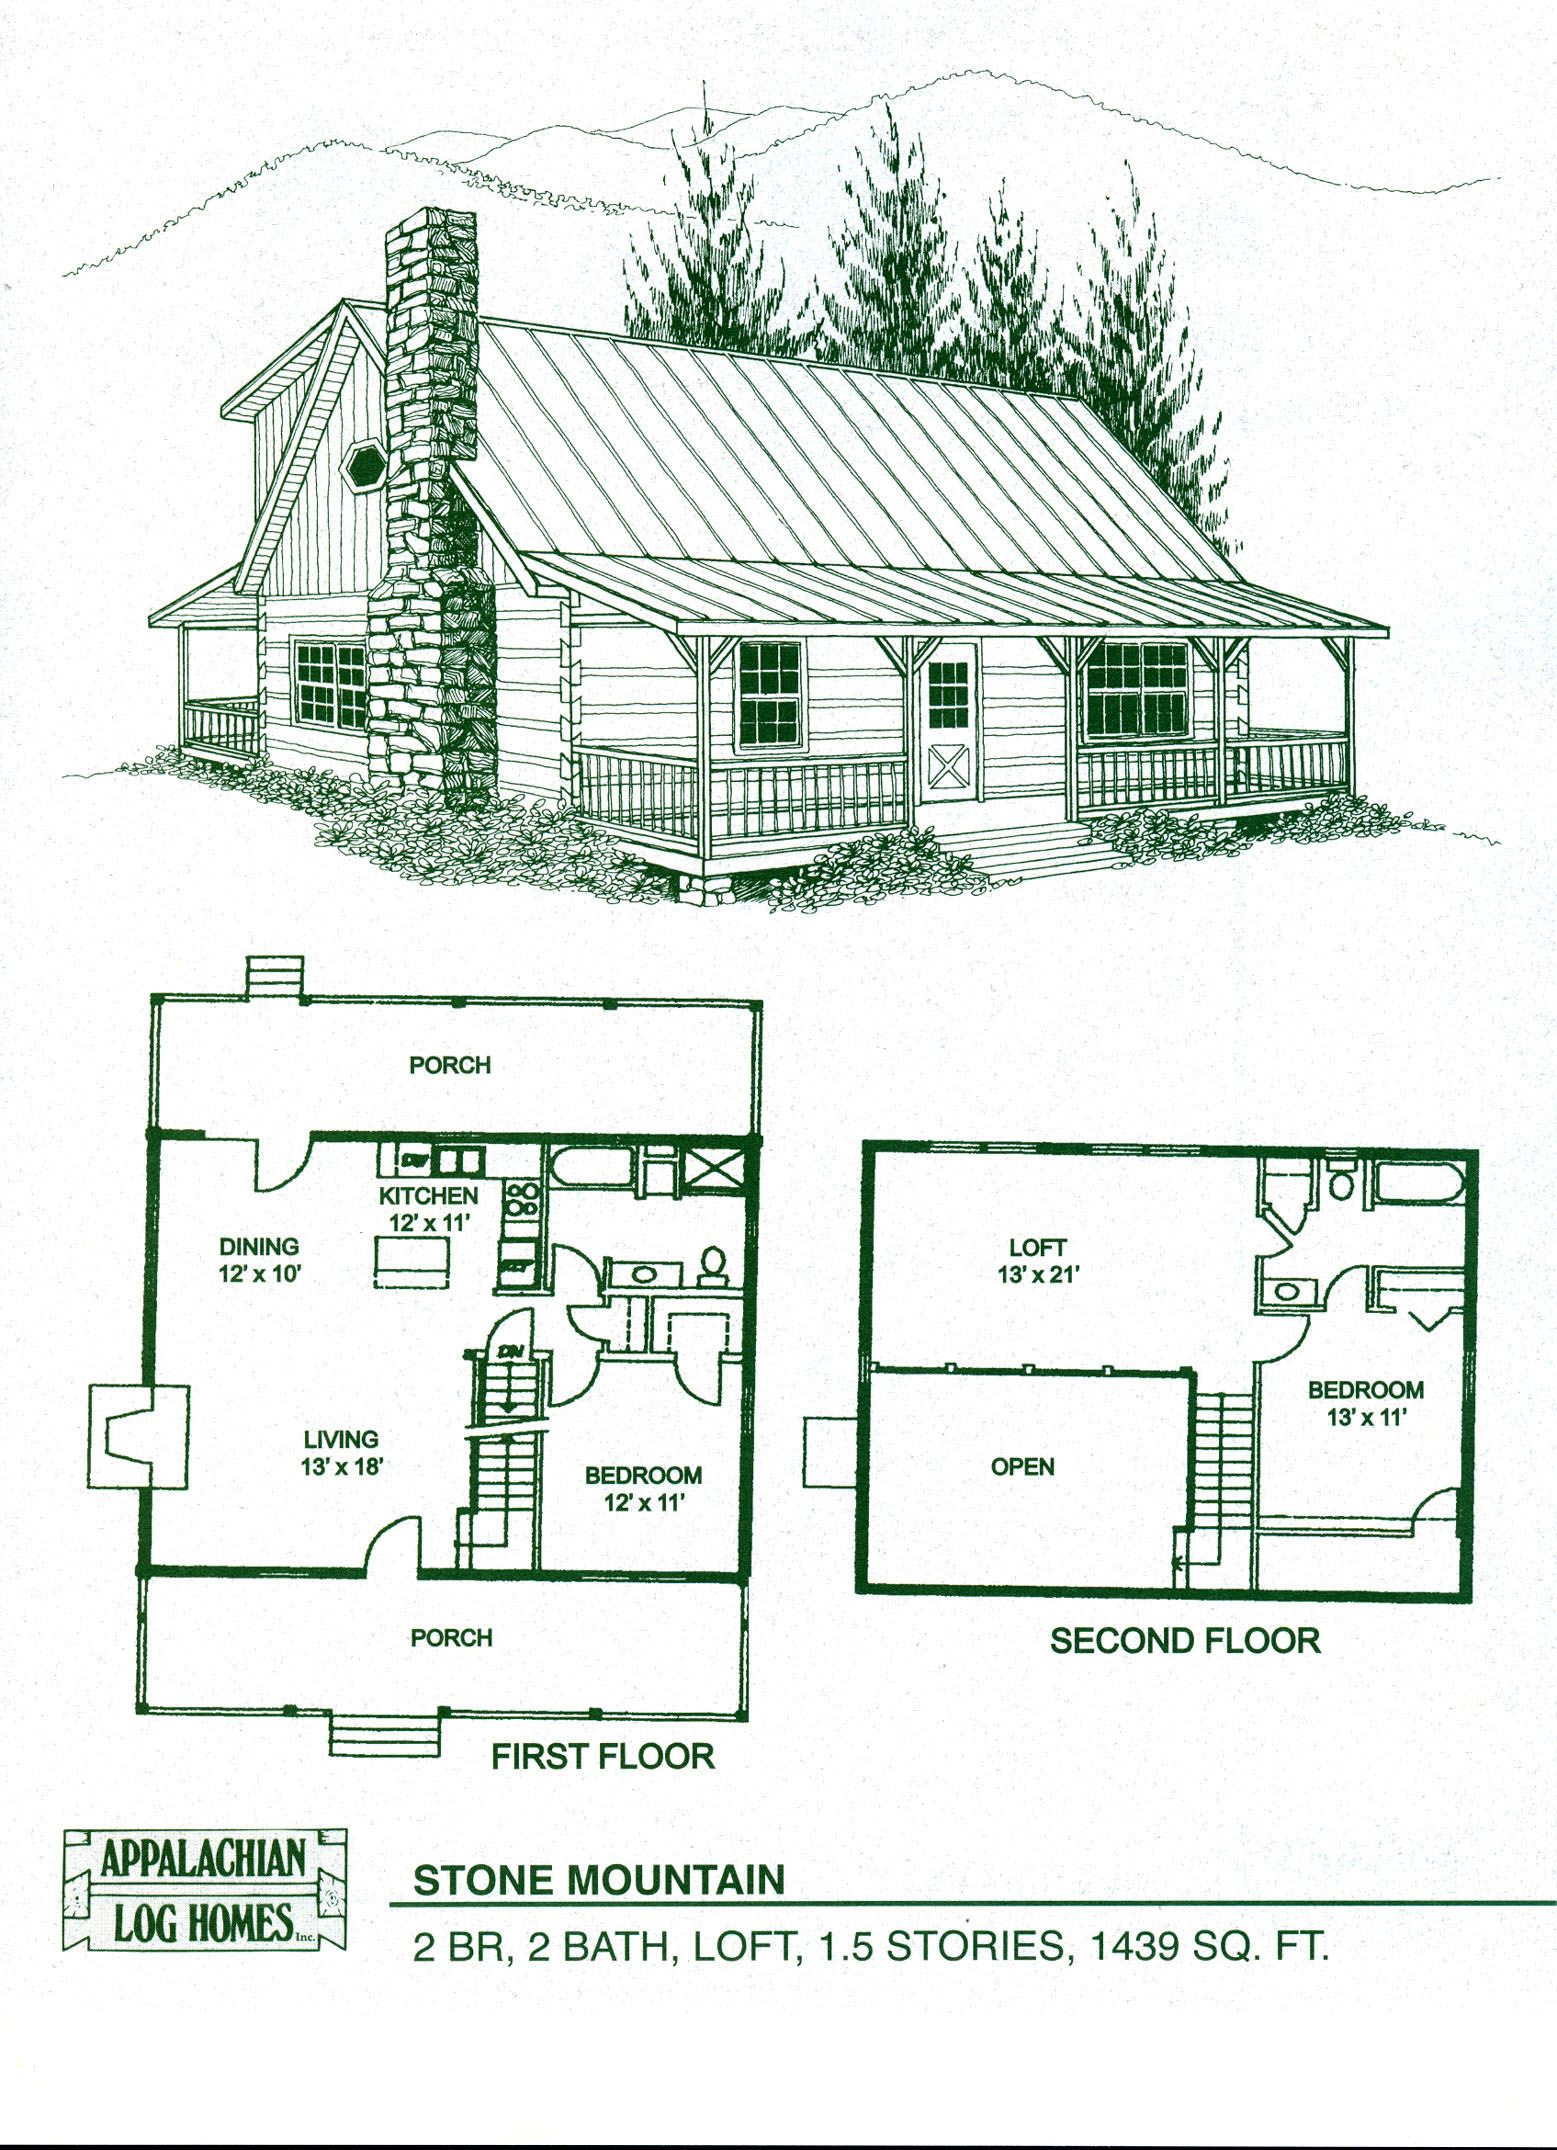 Log Homes House Plans Unique Latest News From Appalachian Log and Timber Homes with